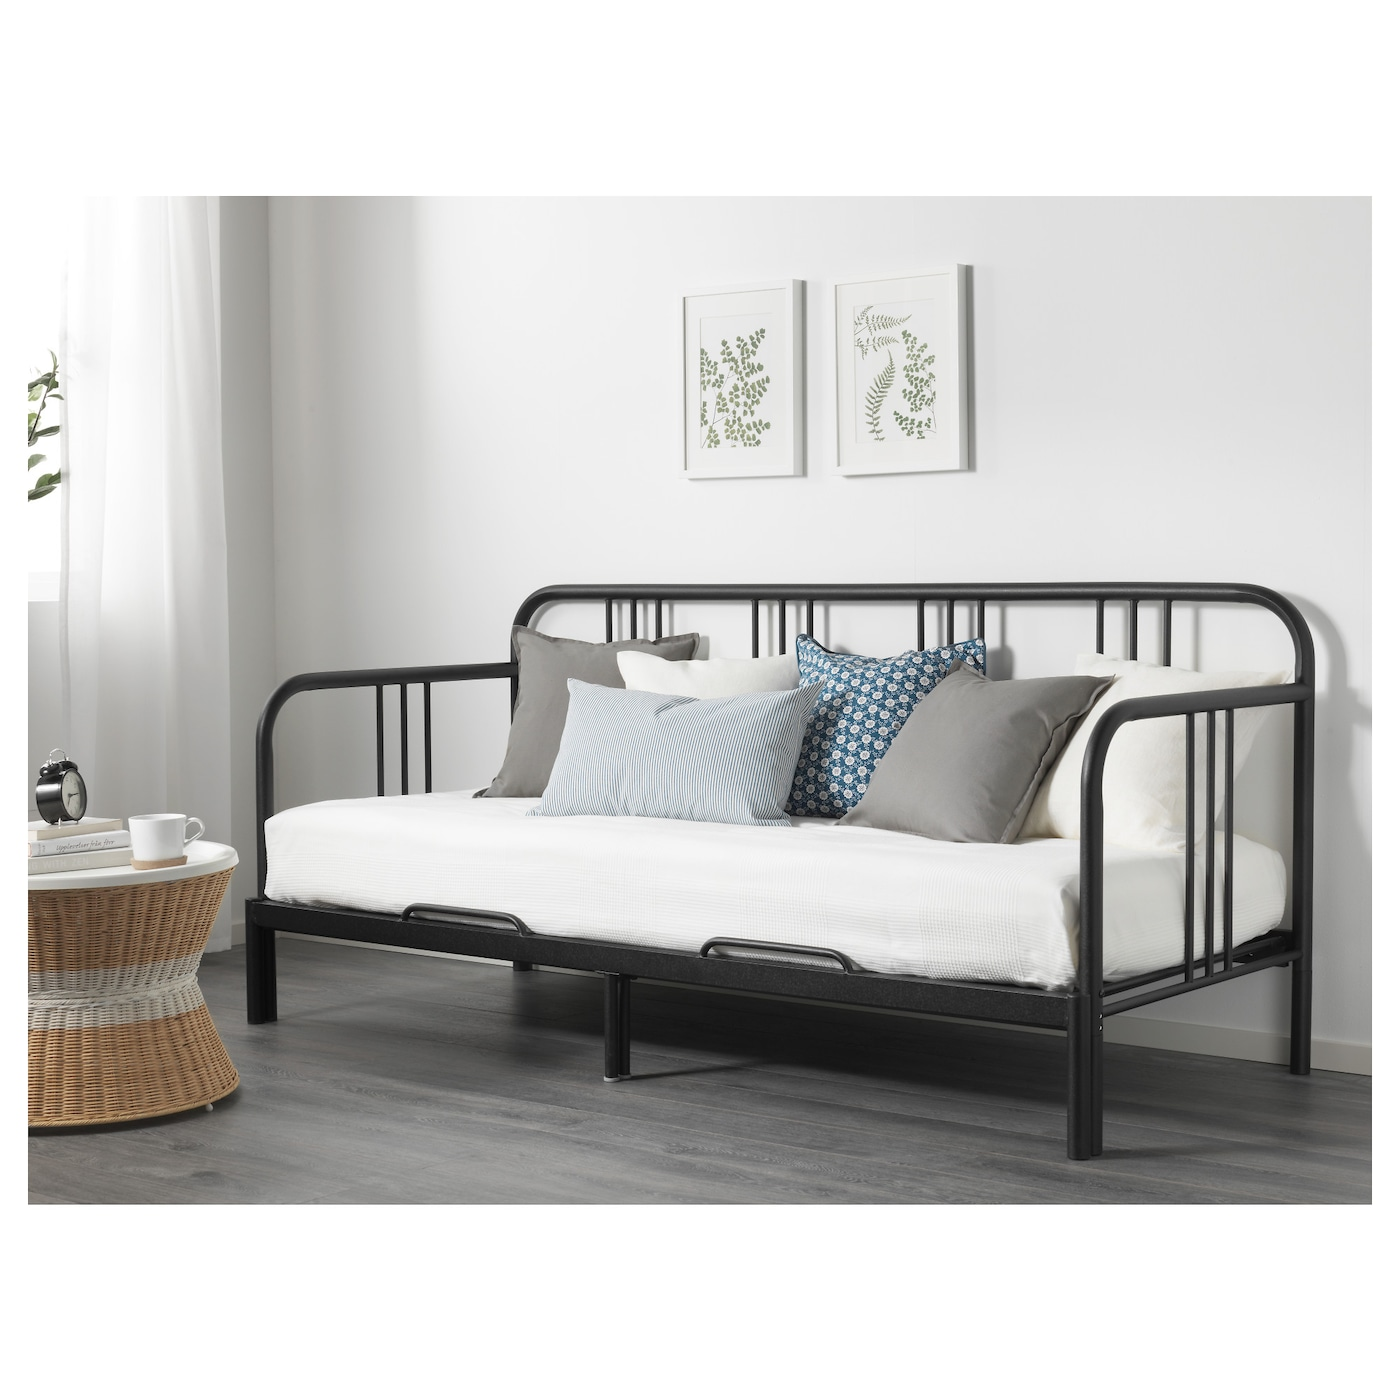 IKEA FYRESDAL day-bed with 2 mattresses